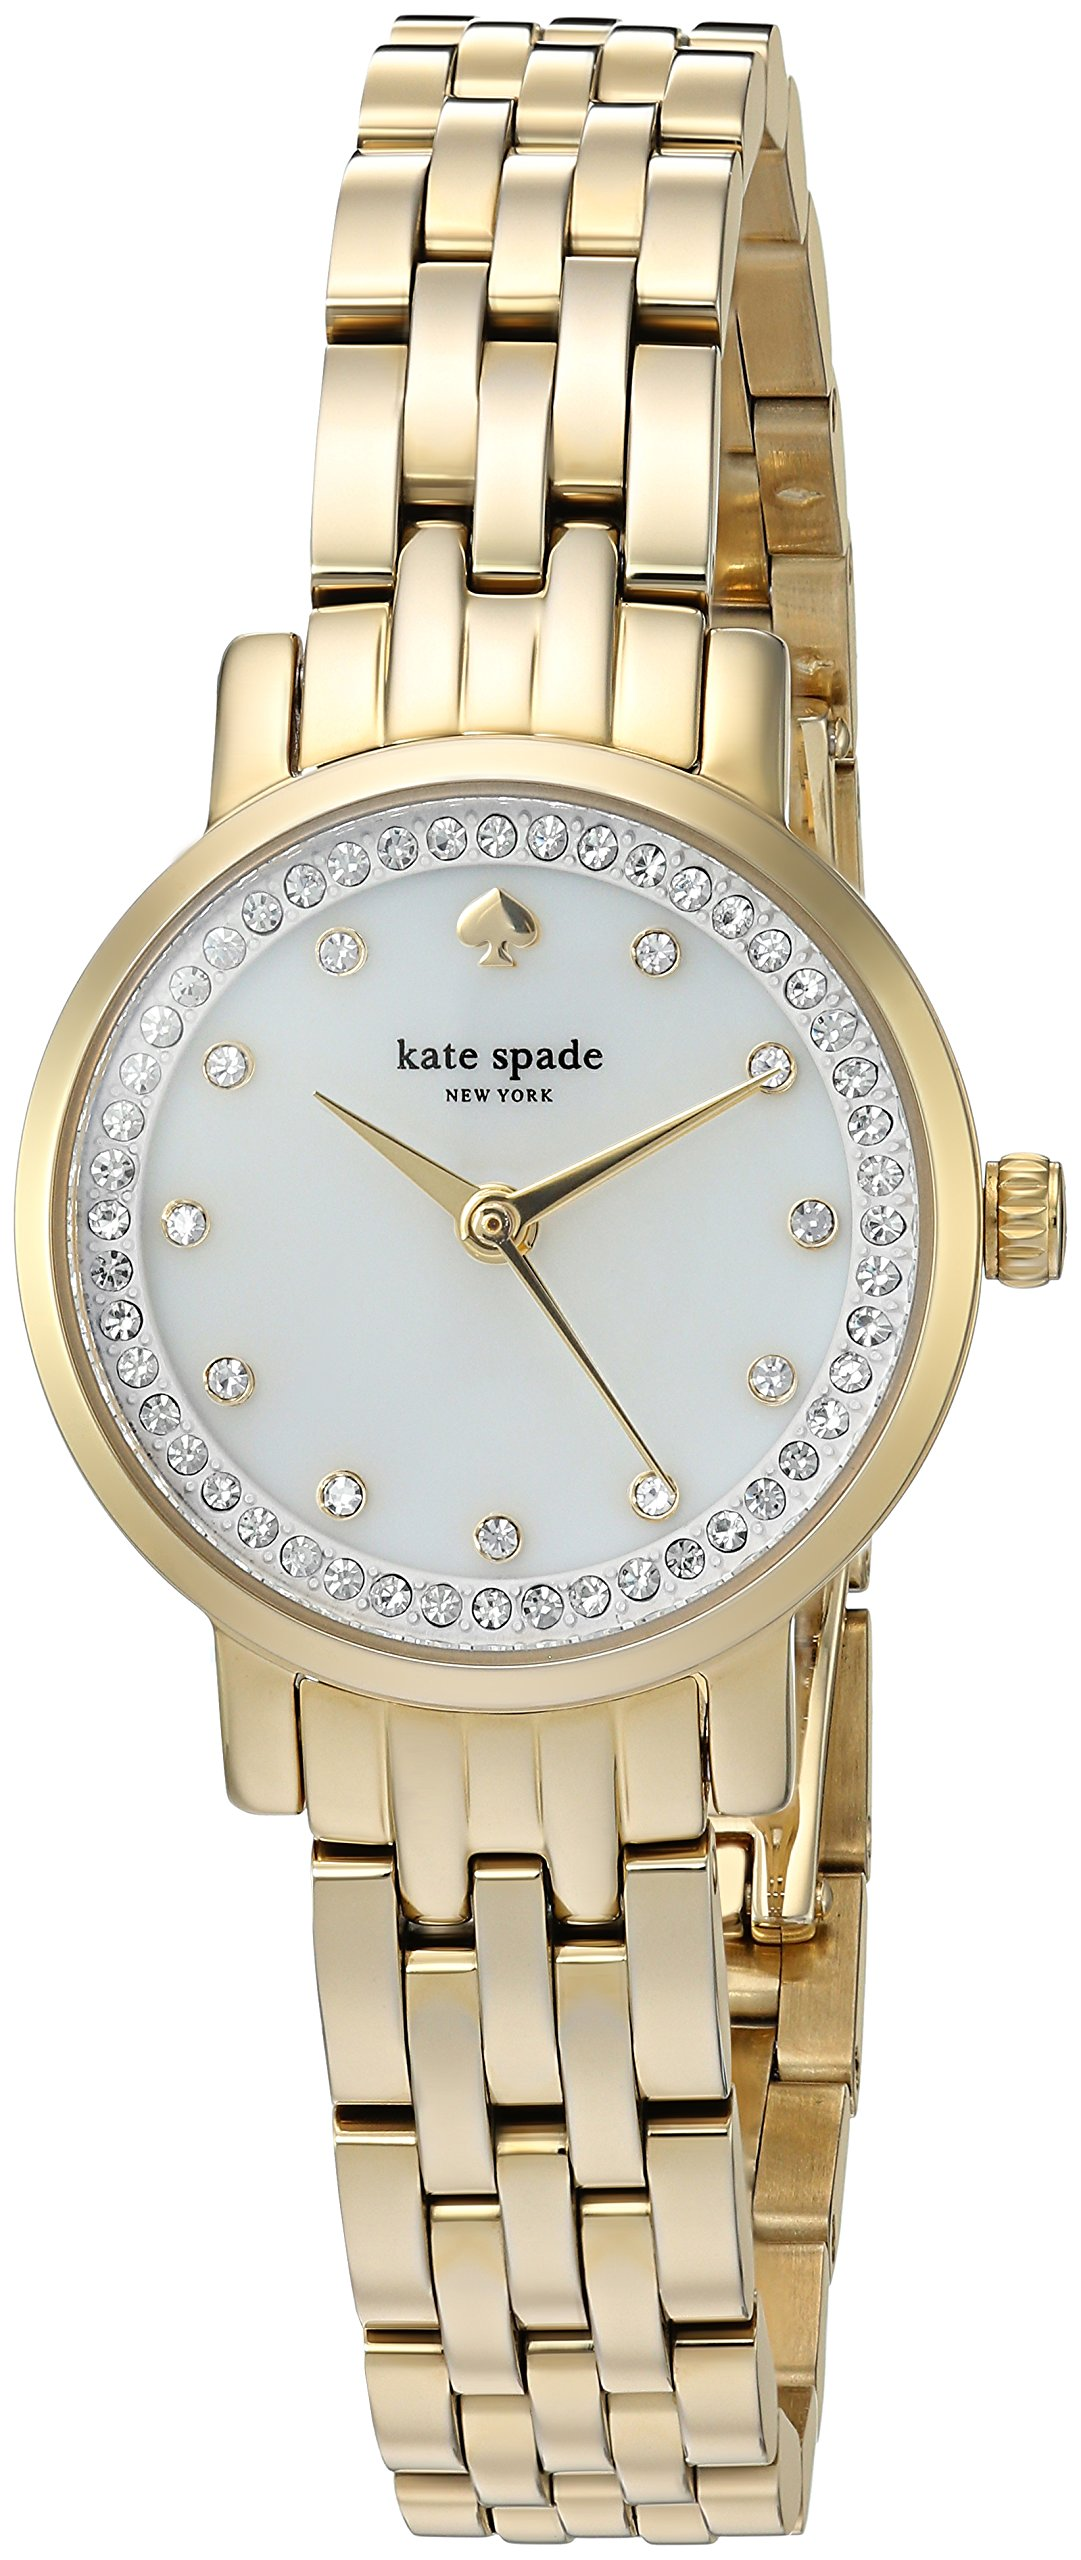 kate spade new york Women's 'Mini Monterey' Quartz Stainless Steel Casual Watch, Color:Gold-Toned (Model: KSW1242)